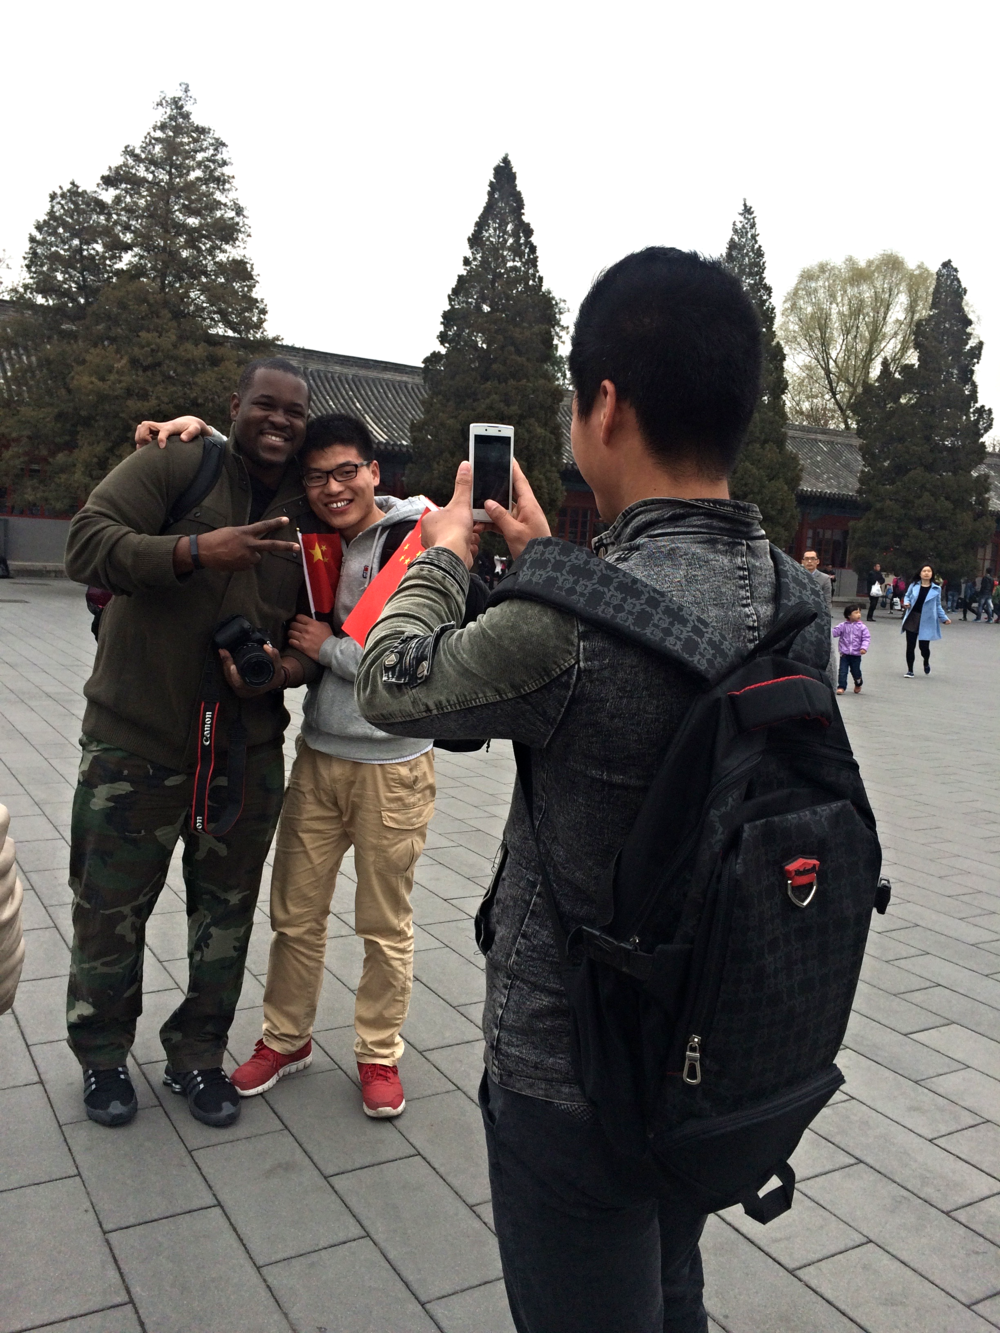 Students taking Antoine's picture at the Forbidden City